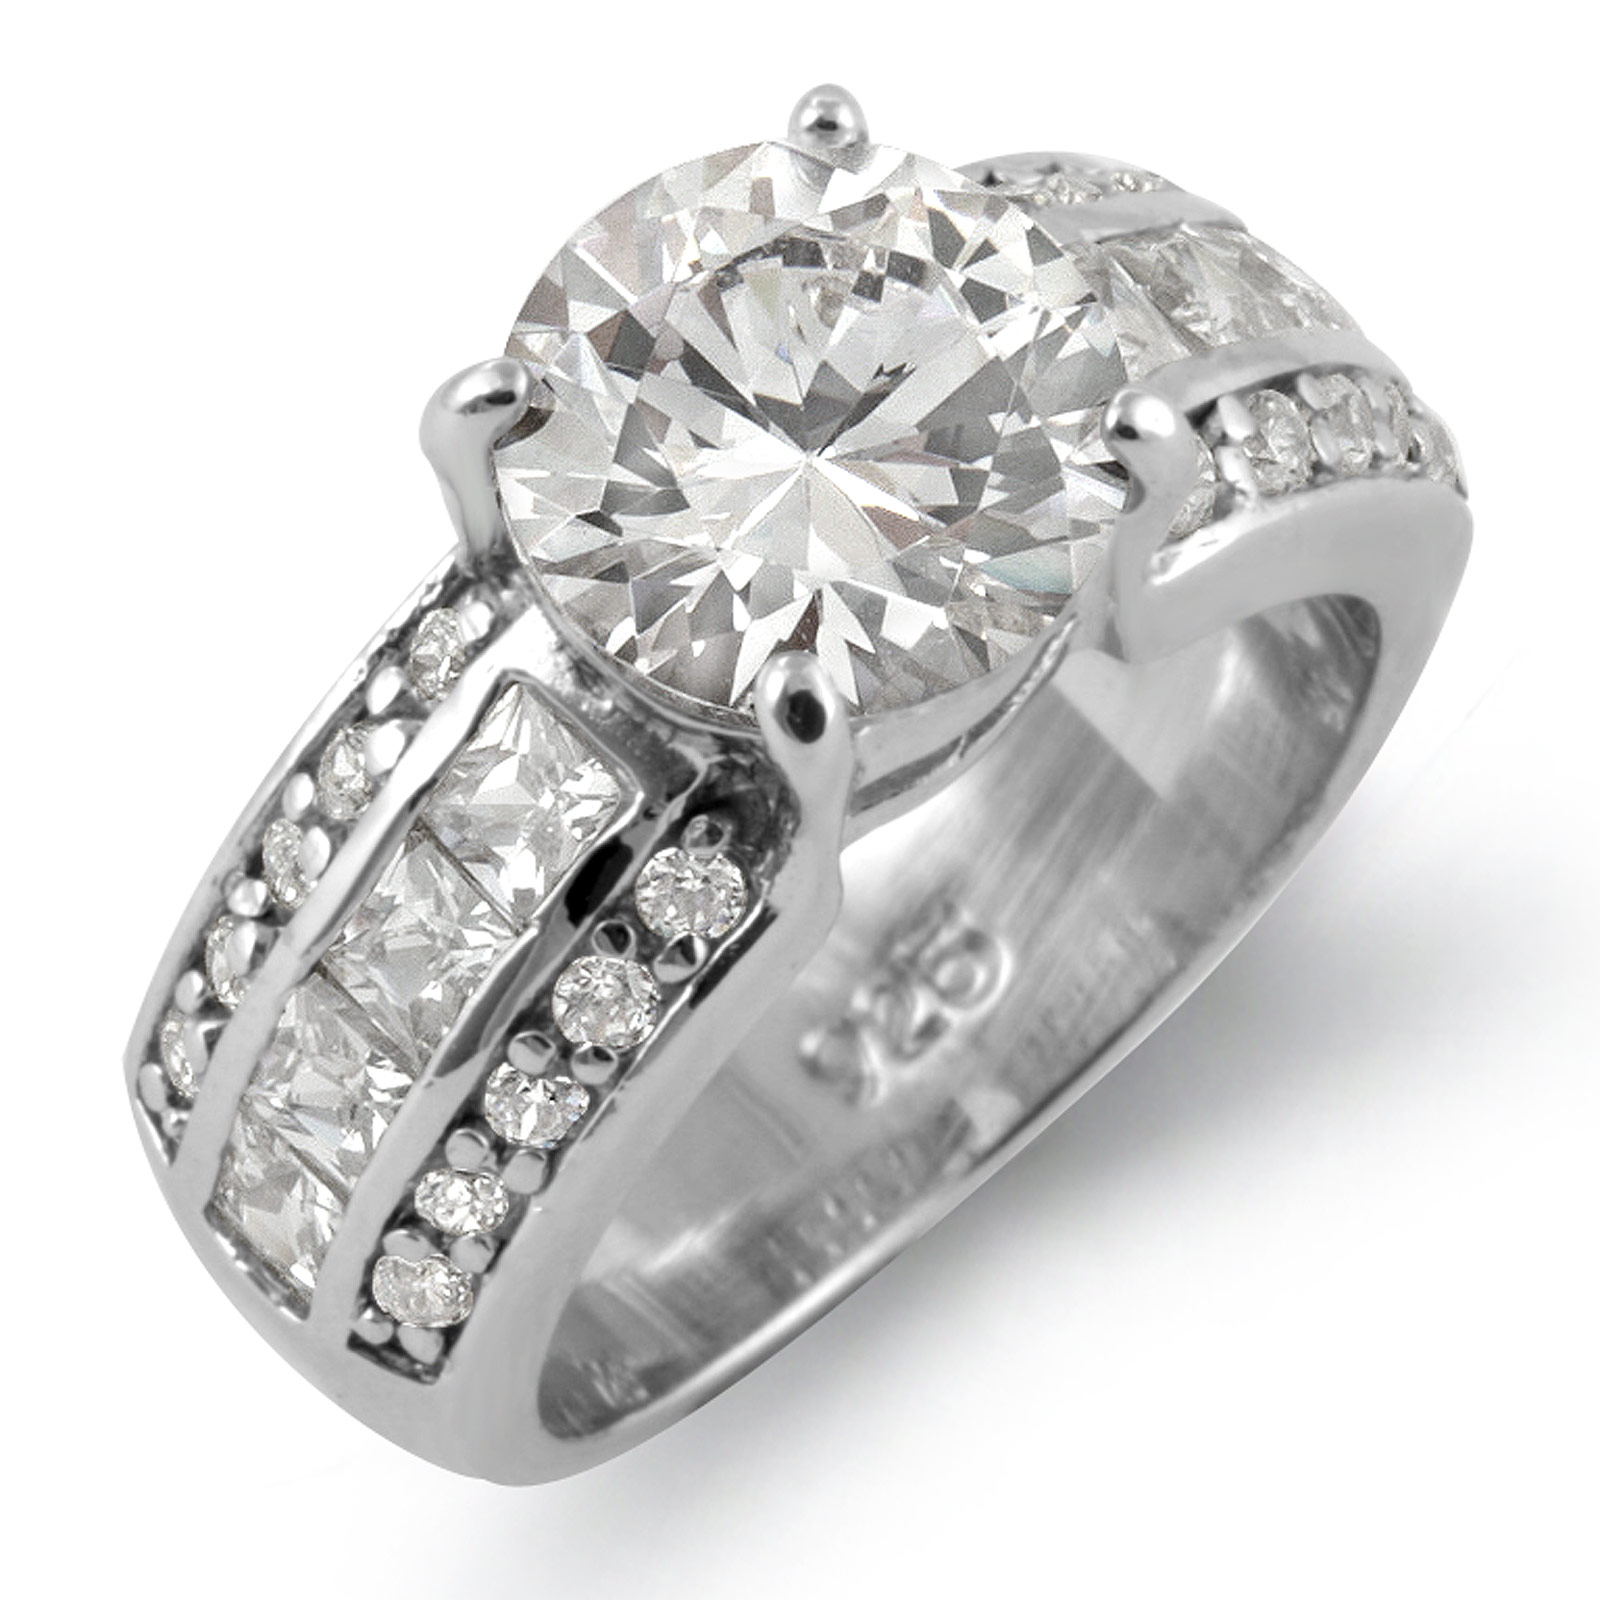 Round Princess Cubic Zirconia Solitaire Engagement Wedding Ring Sterling Silver